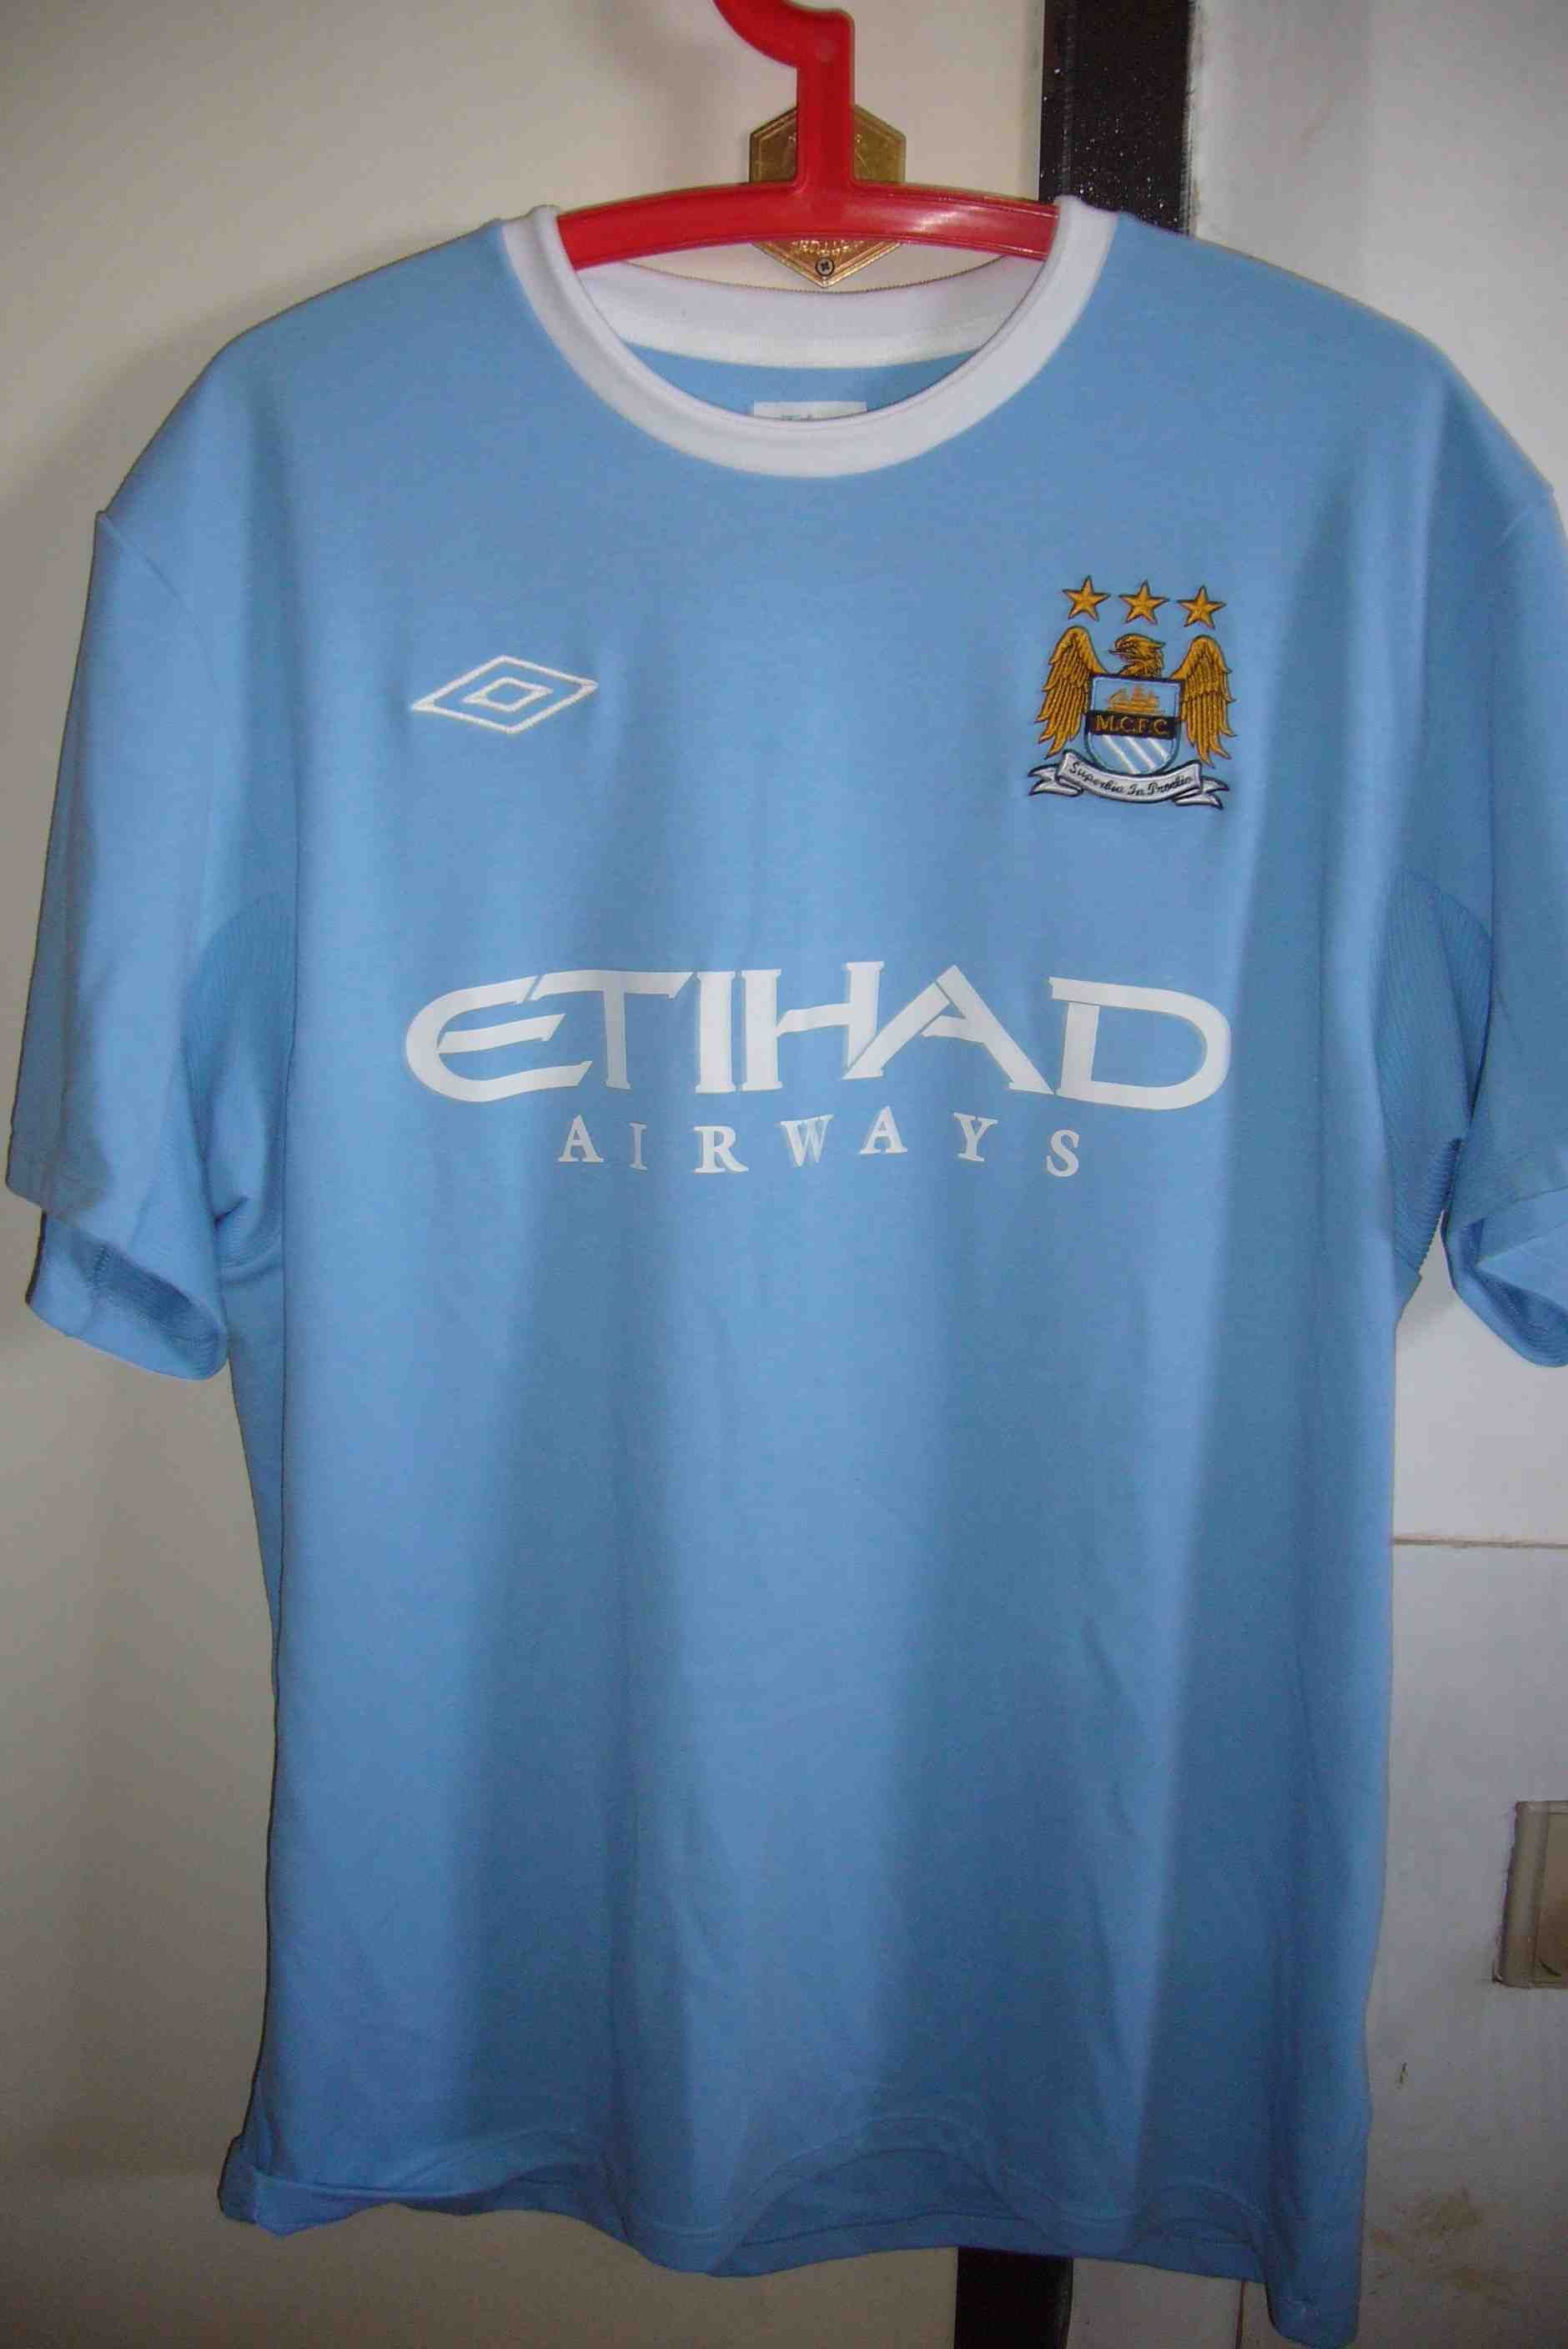 new arrival 5654e 79dd2 Manchester City South Africa Tour (Mee)   Others match worn ...